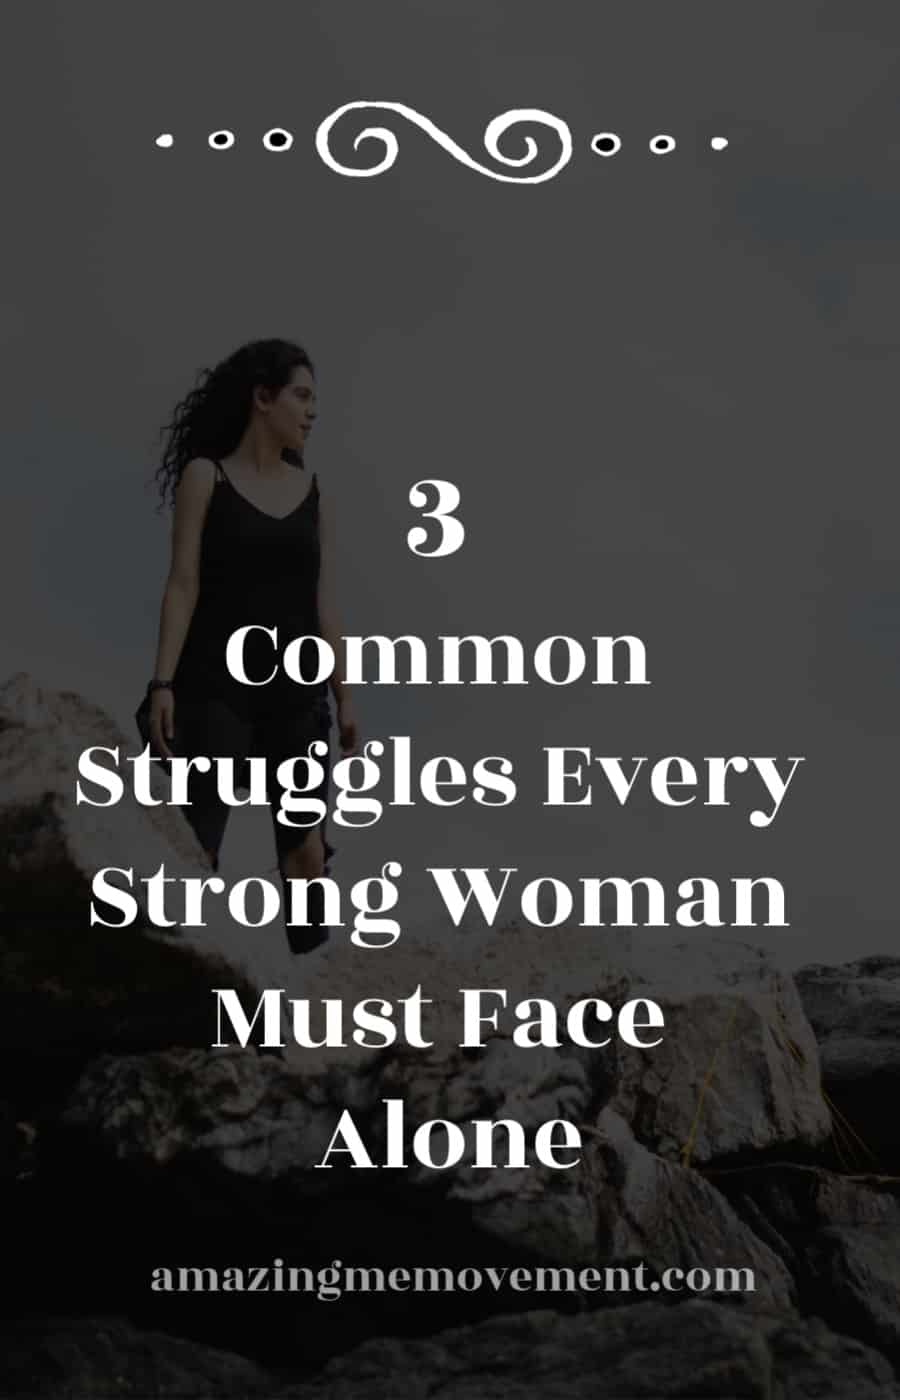 3 common struggles every strong woman must face alone